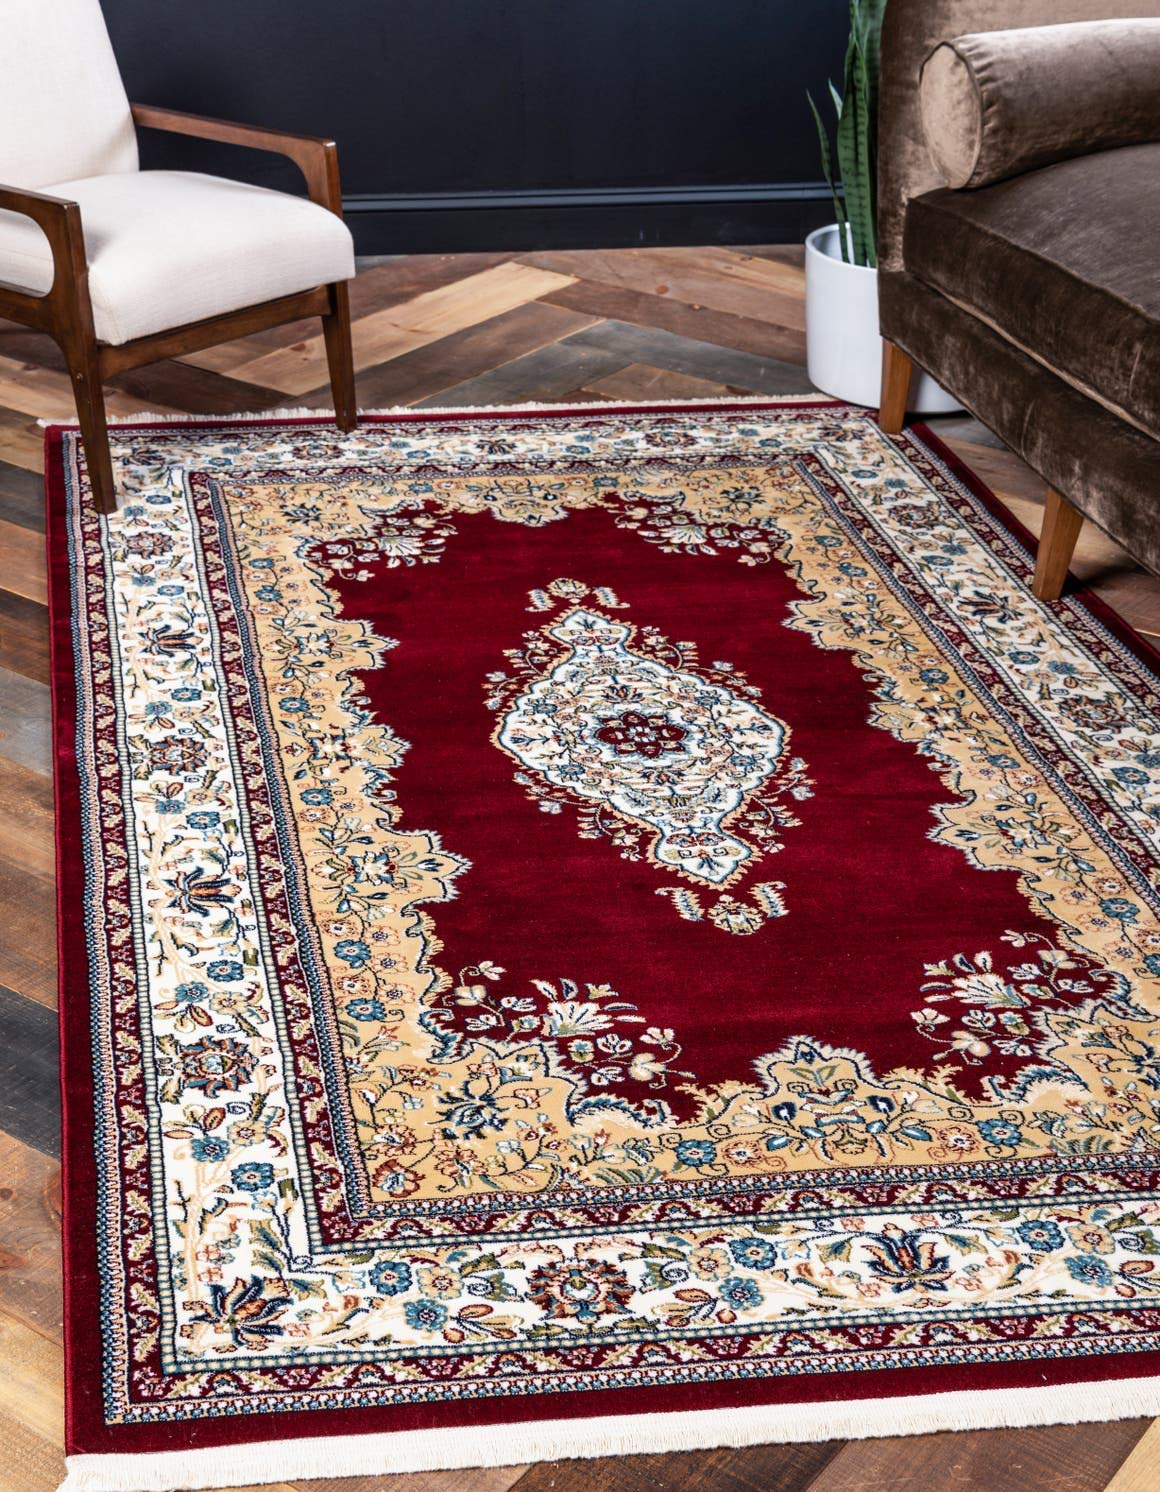 Unique Loom Narenj Collection Classic Traditional Medallion Textured Burgundy Area Rug 3 0 x 5 0